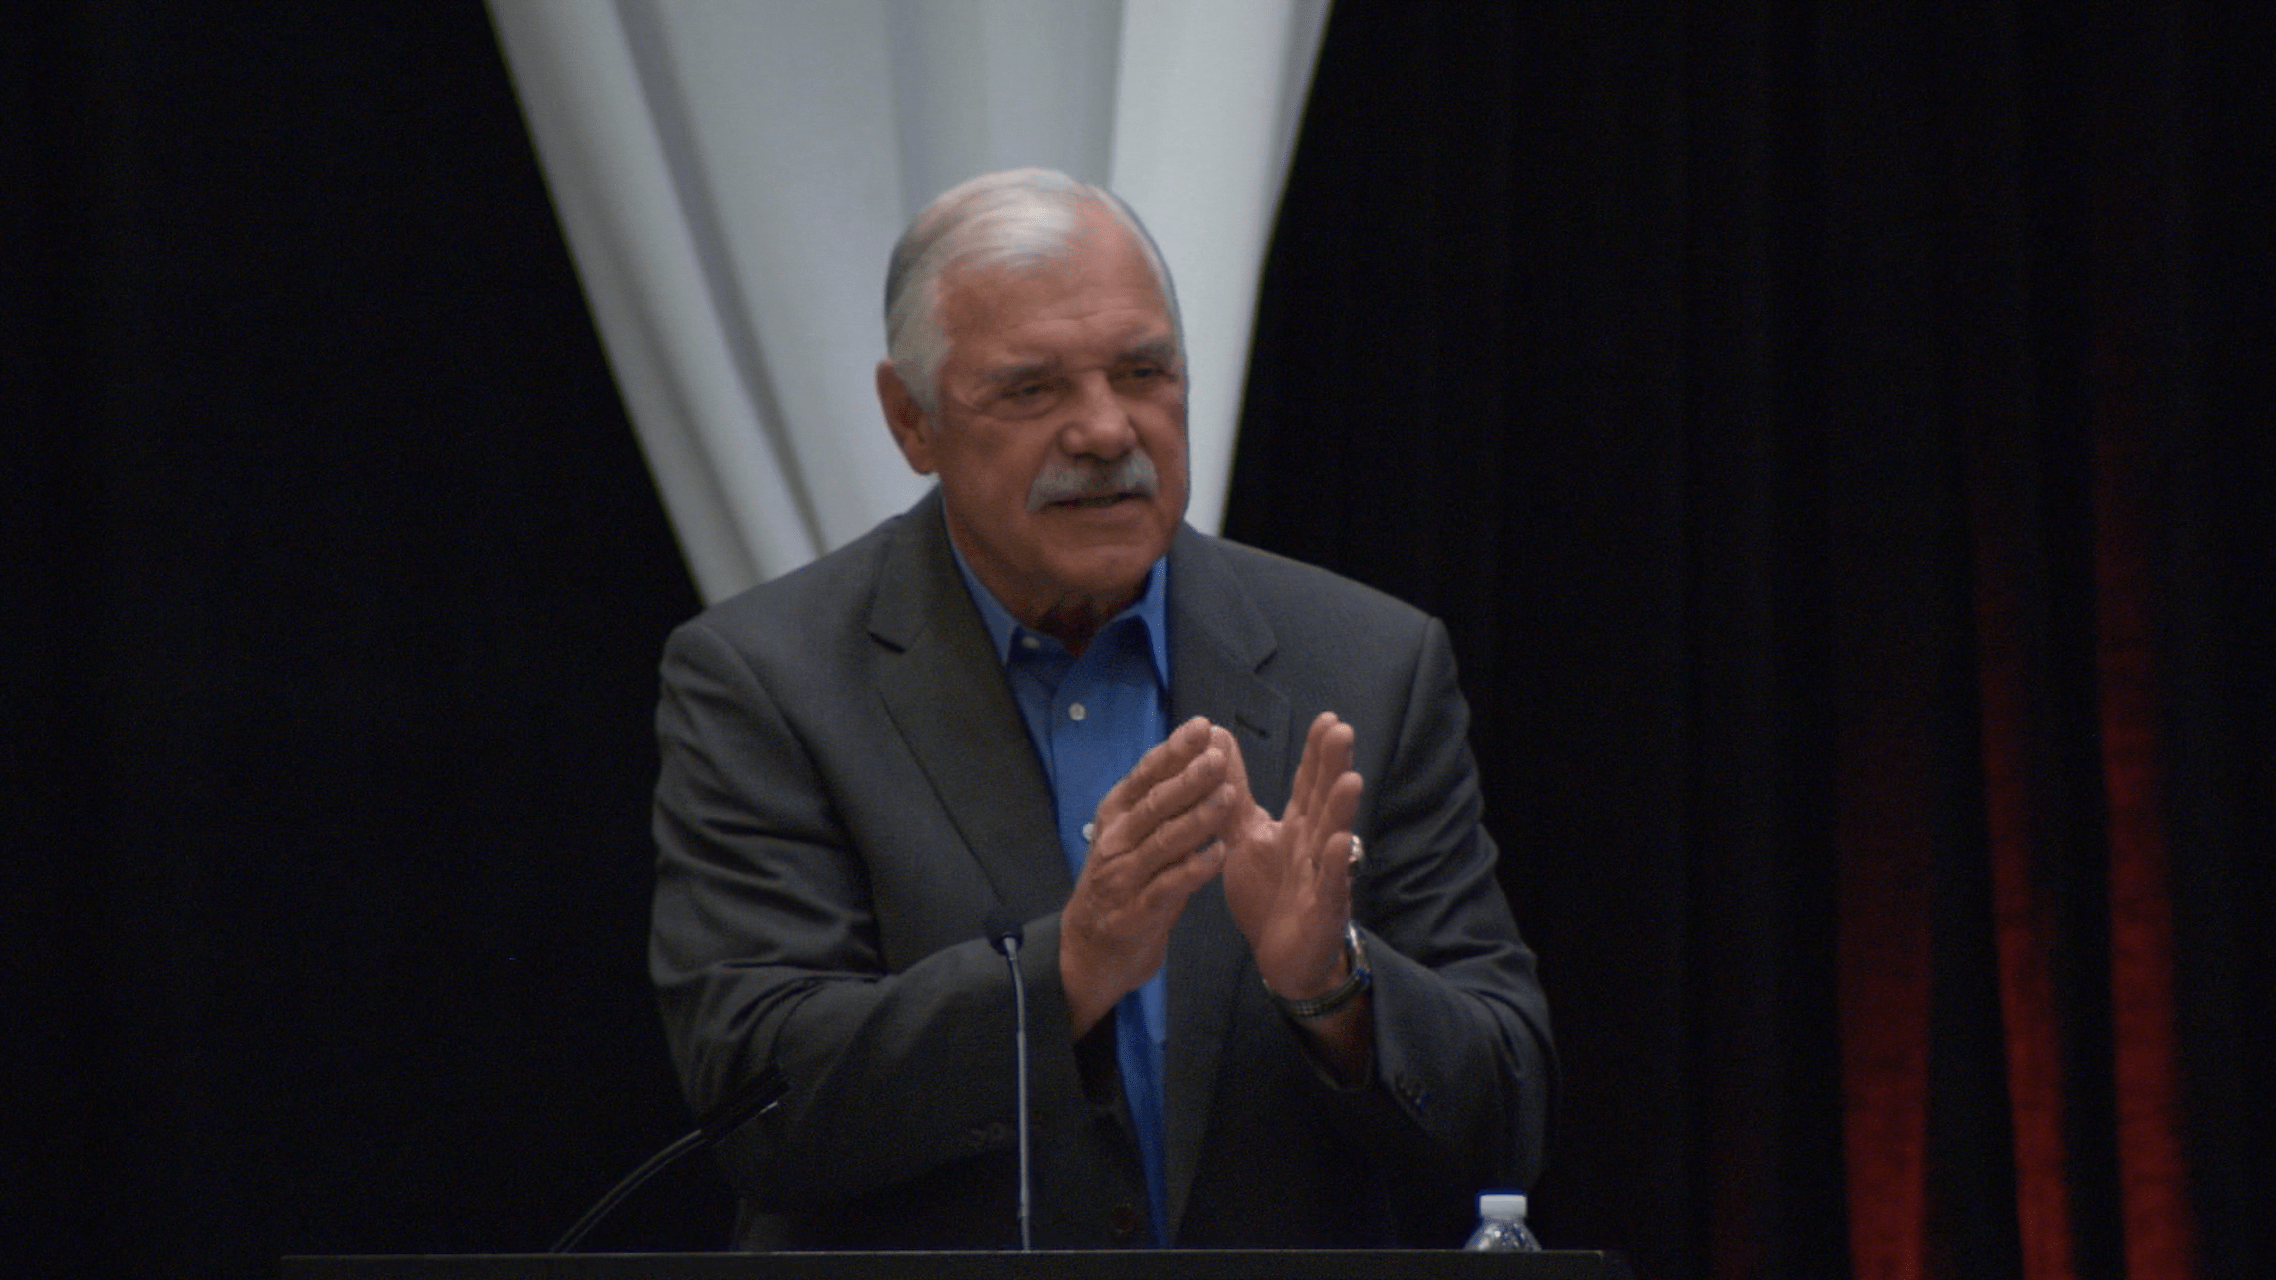 Larry Csonka Public Speaking